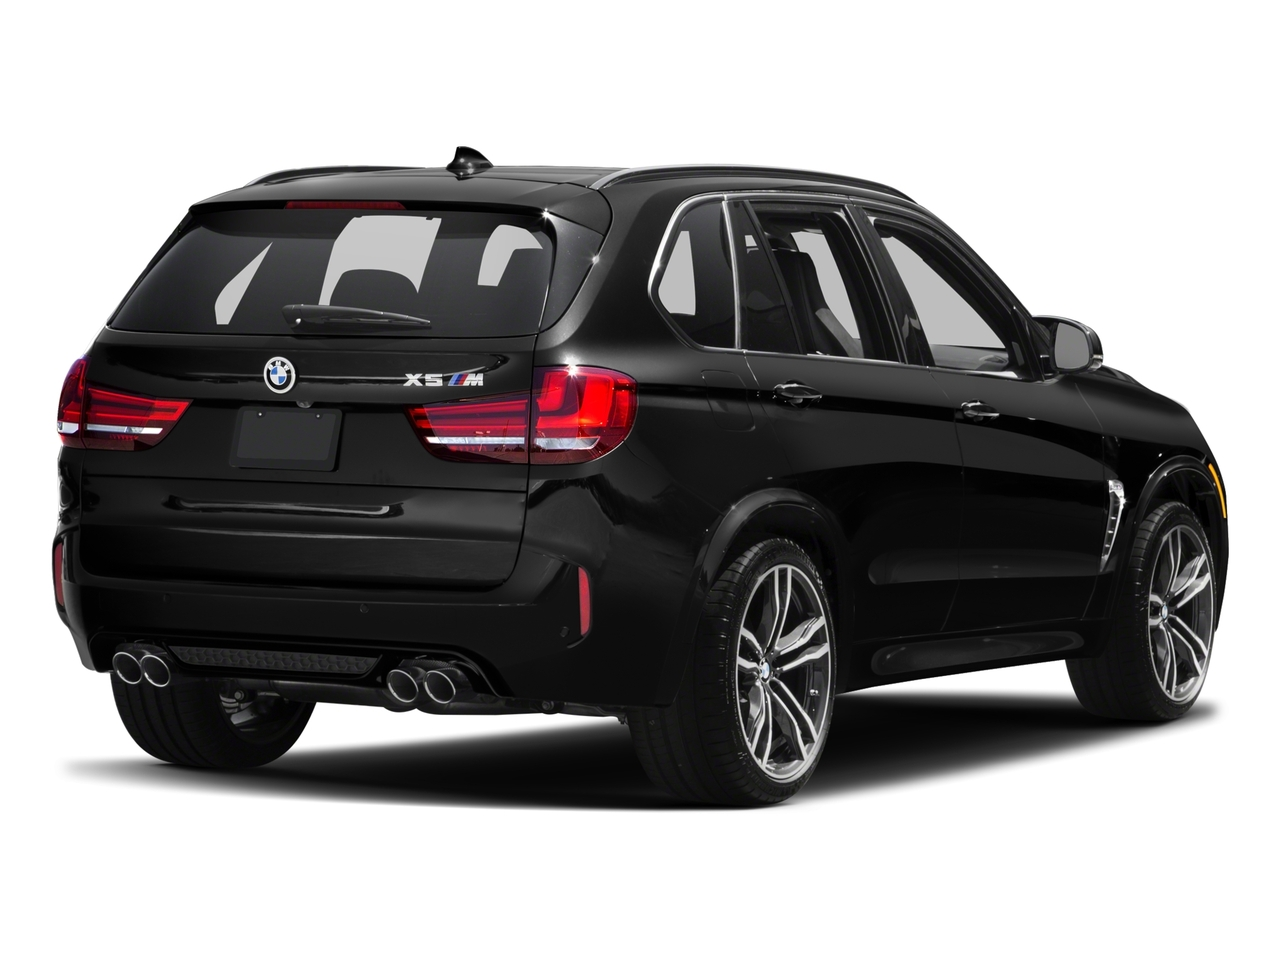 BMW X5 M  Habberstad BMW of Huntington  Huntington NY